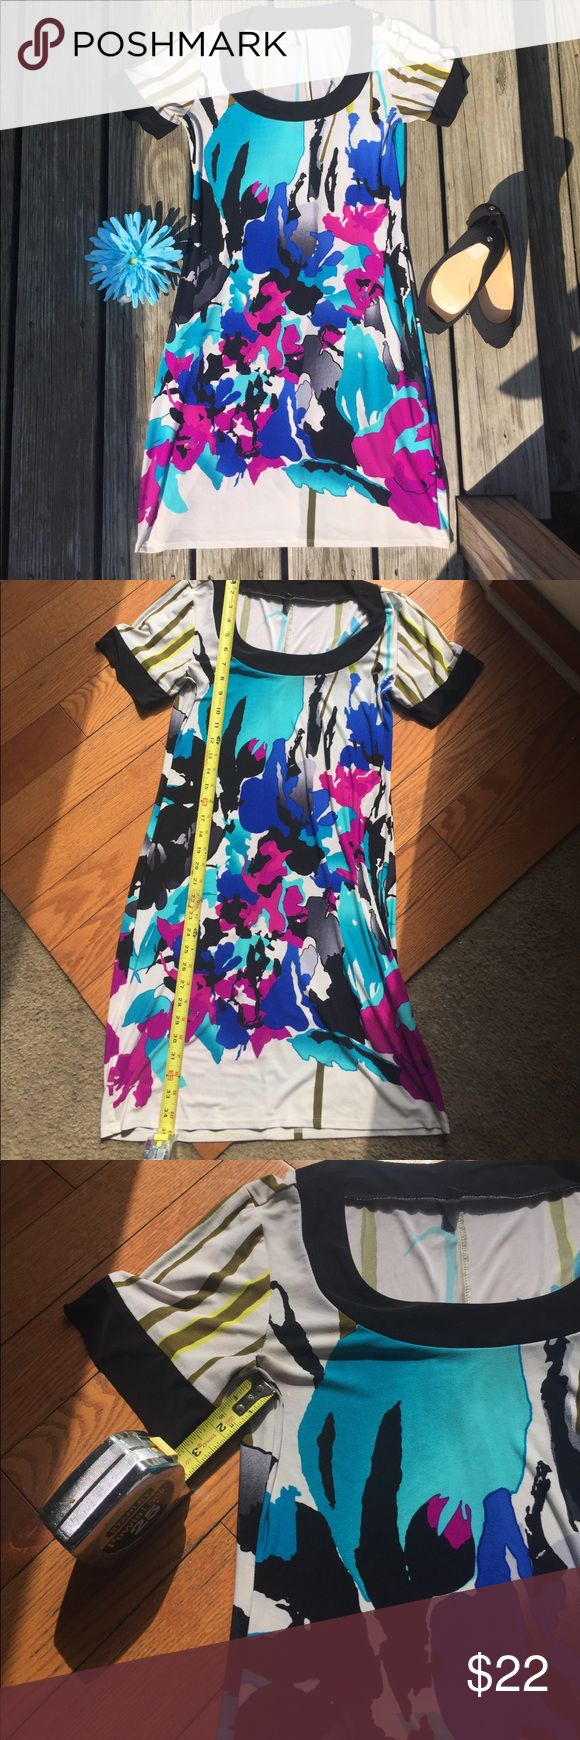 "💖 Versatile Fun & Classy Multi Color Dress! 💖 Perfect dress for the office, date night, or any time you want to add a splash of color to the occasion!  Colors are teal, blue, dark purple/pink, some camo green with black trim and scoop neck.  Approx 35"" length and 3.5"" inseam on arms. Tiana B Dresses"